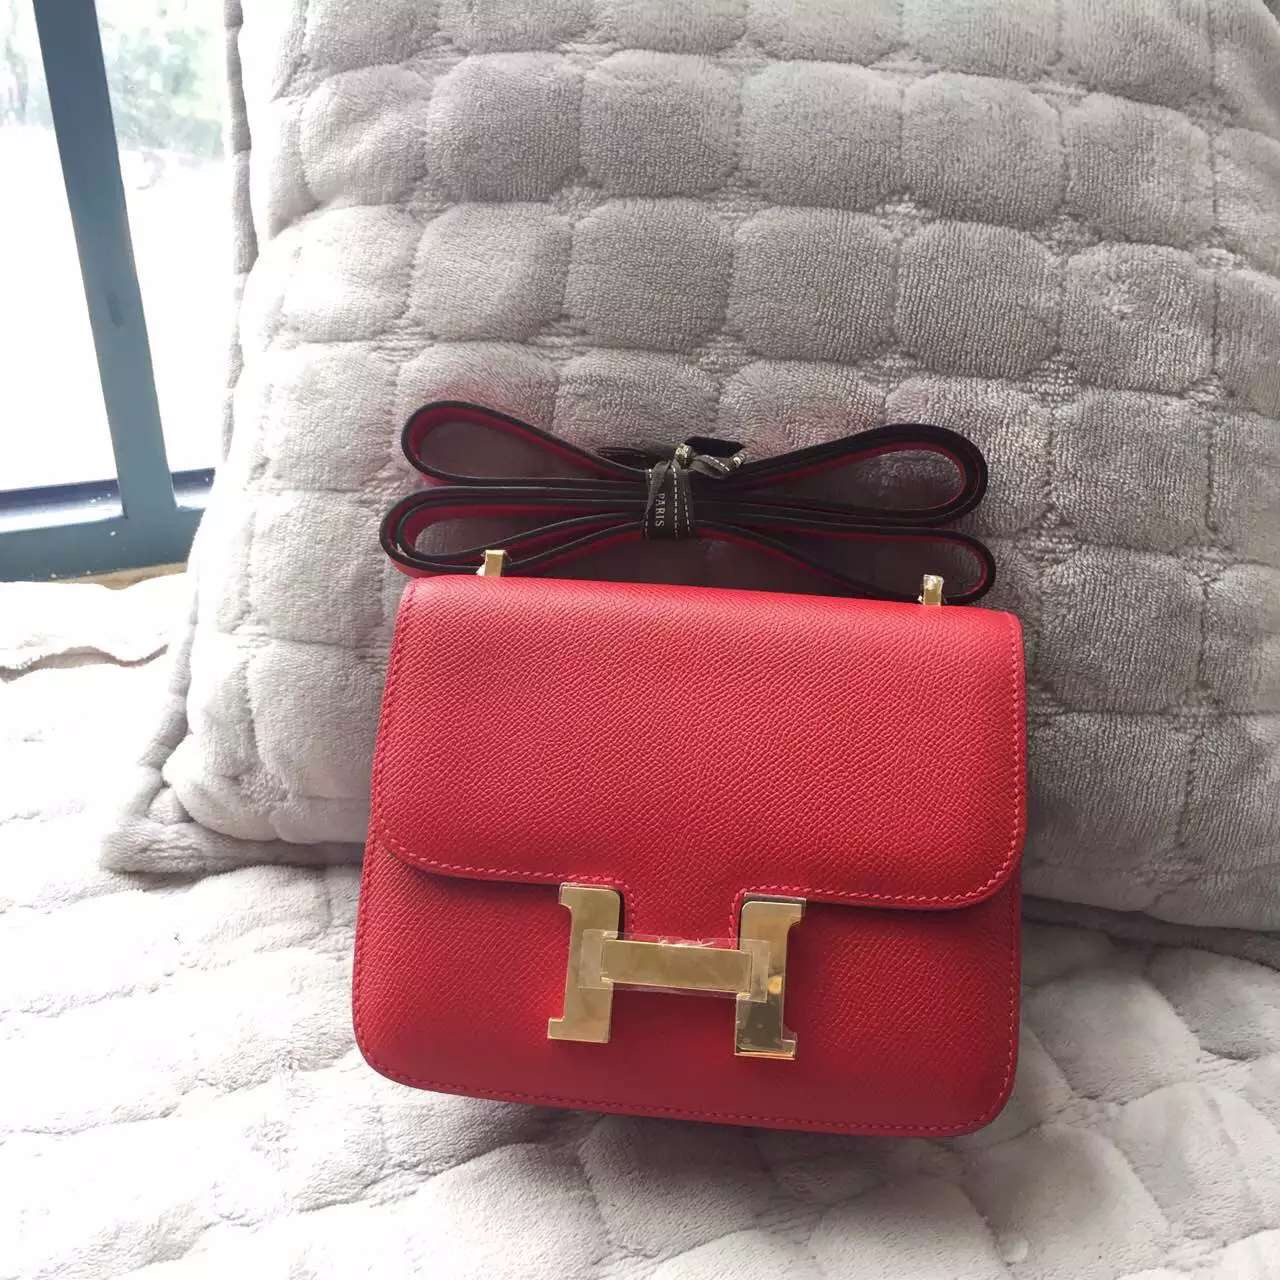 2015 New Fashion Hermes Epsom Leather Mini Constance Bag Multi Color Women's Handbag